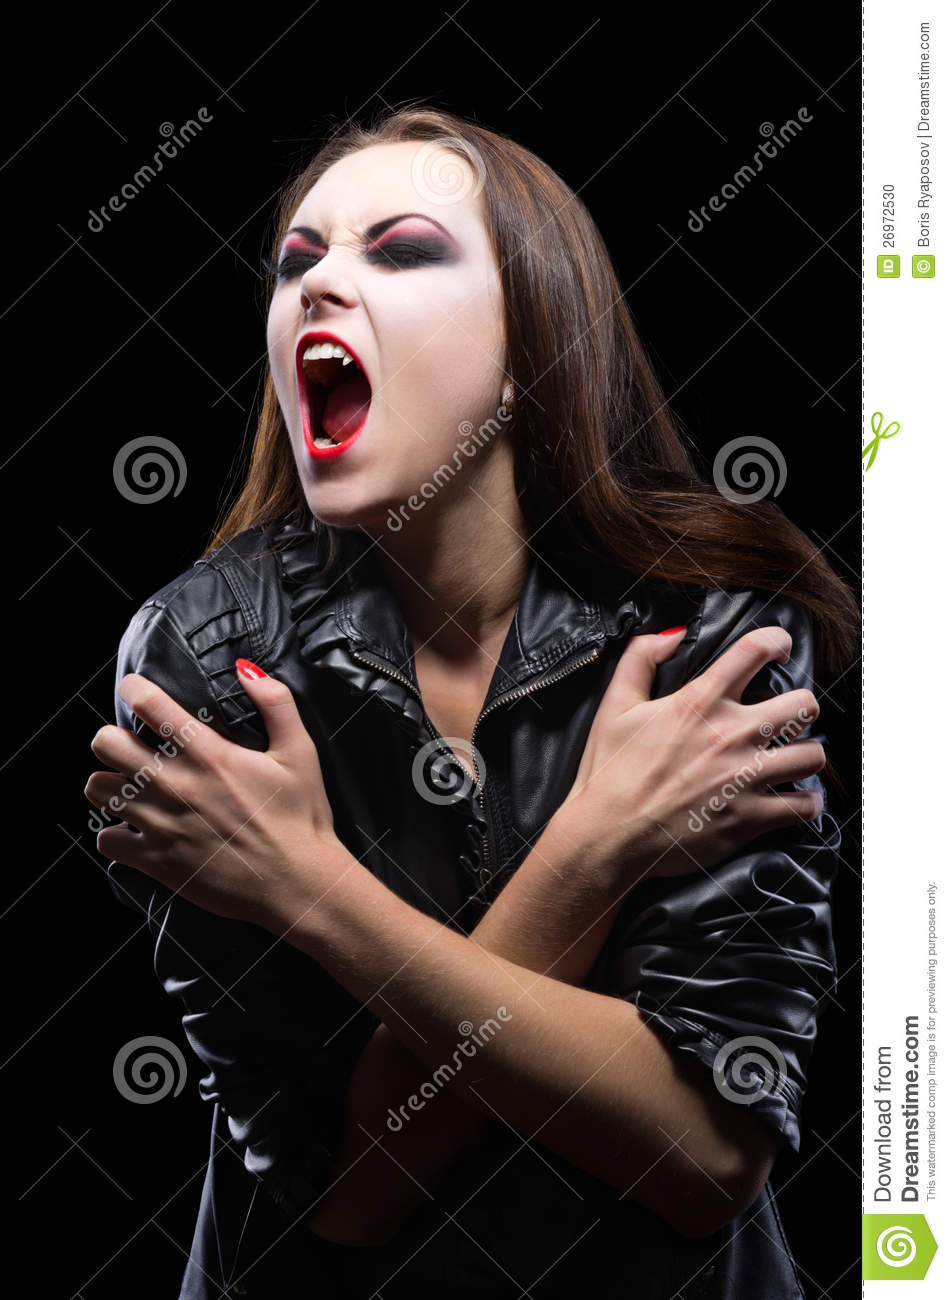 Evil Dark Fantasy Girl Wallpaper Hd Young Vampire Girl Isolated Stock Photo Image Of Furious